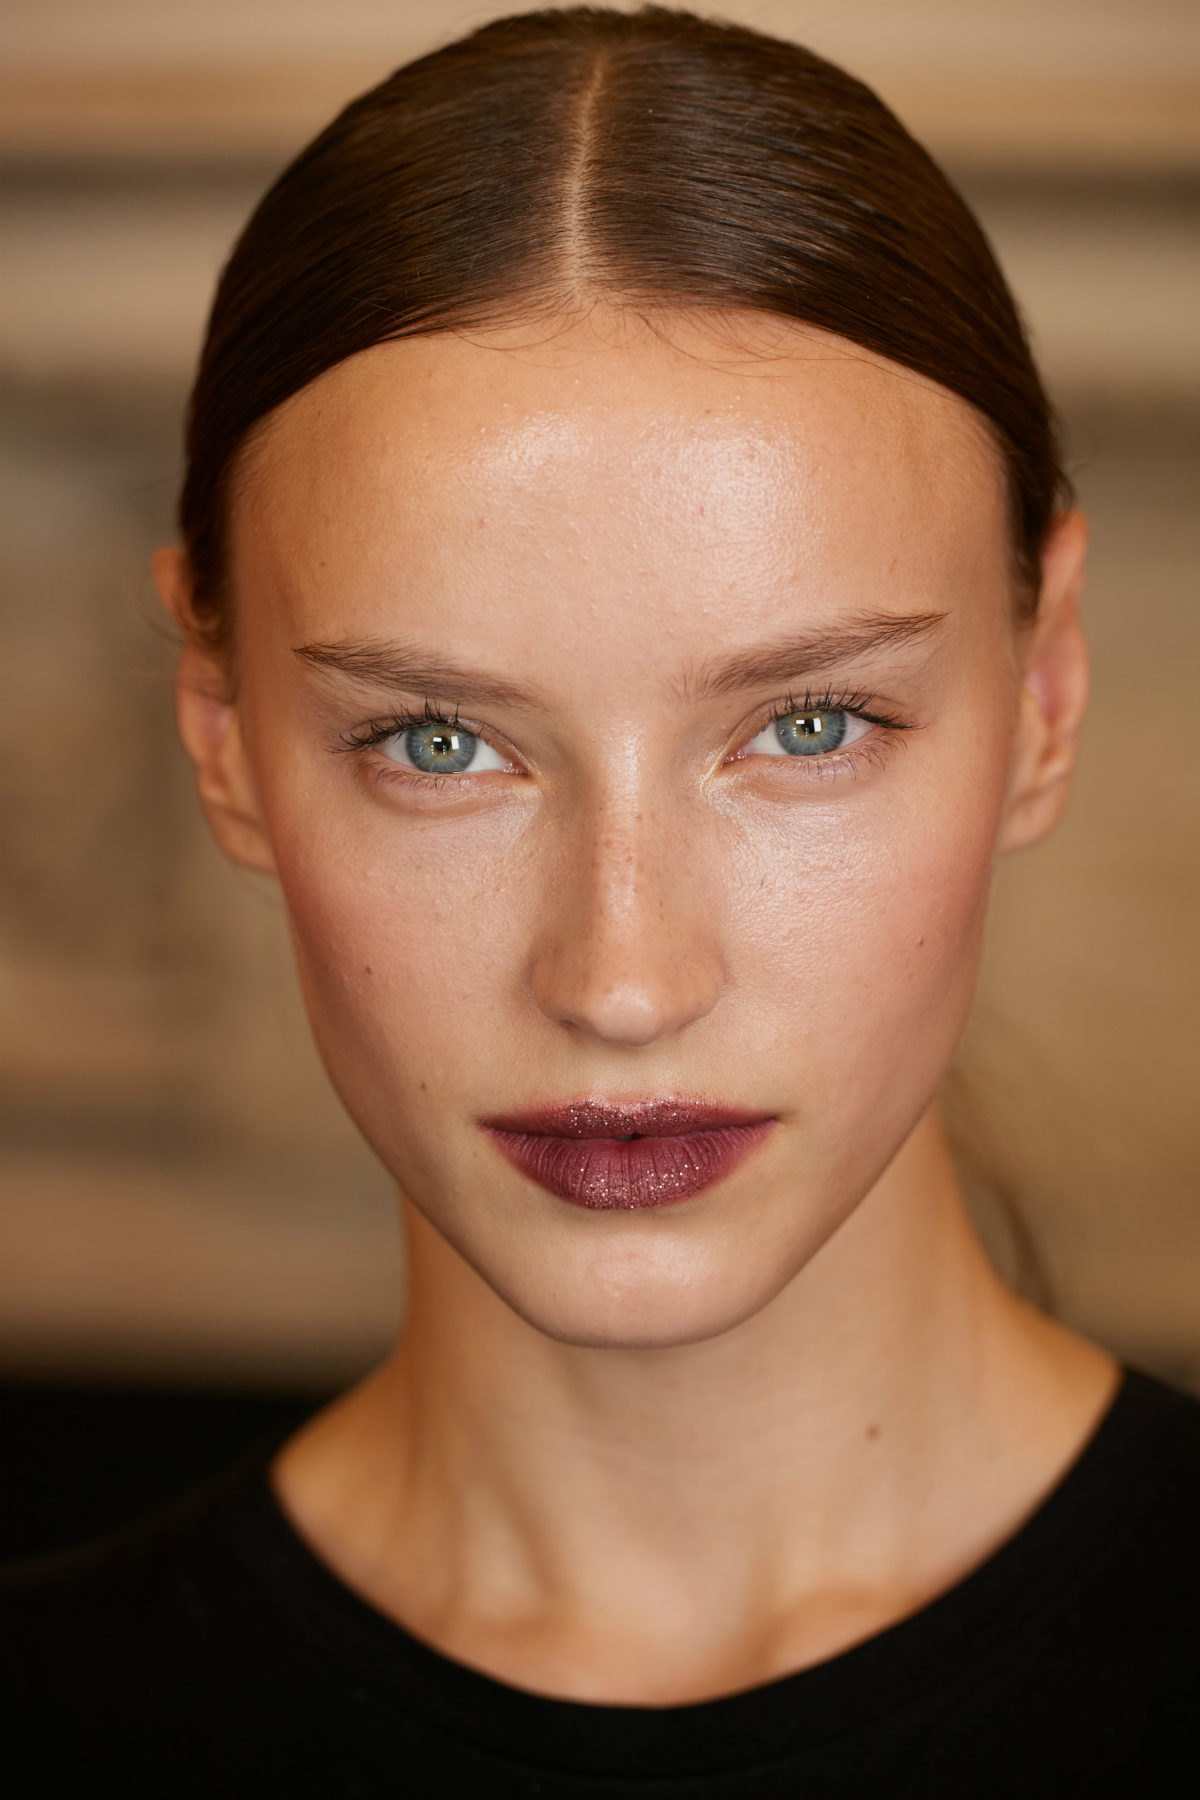 MAKE-UP ARTIST LONI BAUR ON WHY AUTHENTICITY IS NEXT SEASON'S BIGGEST TREND